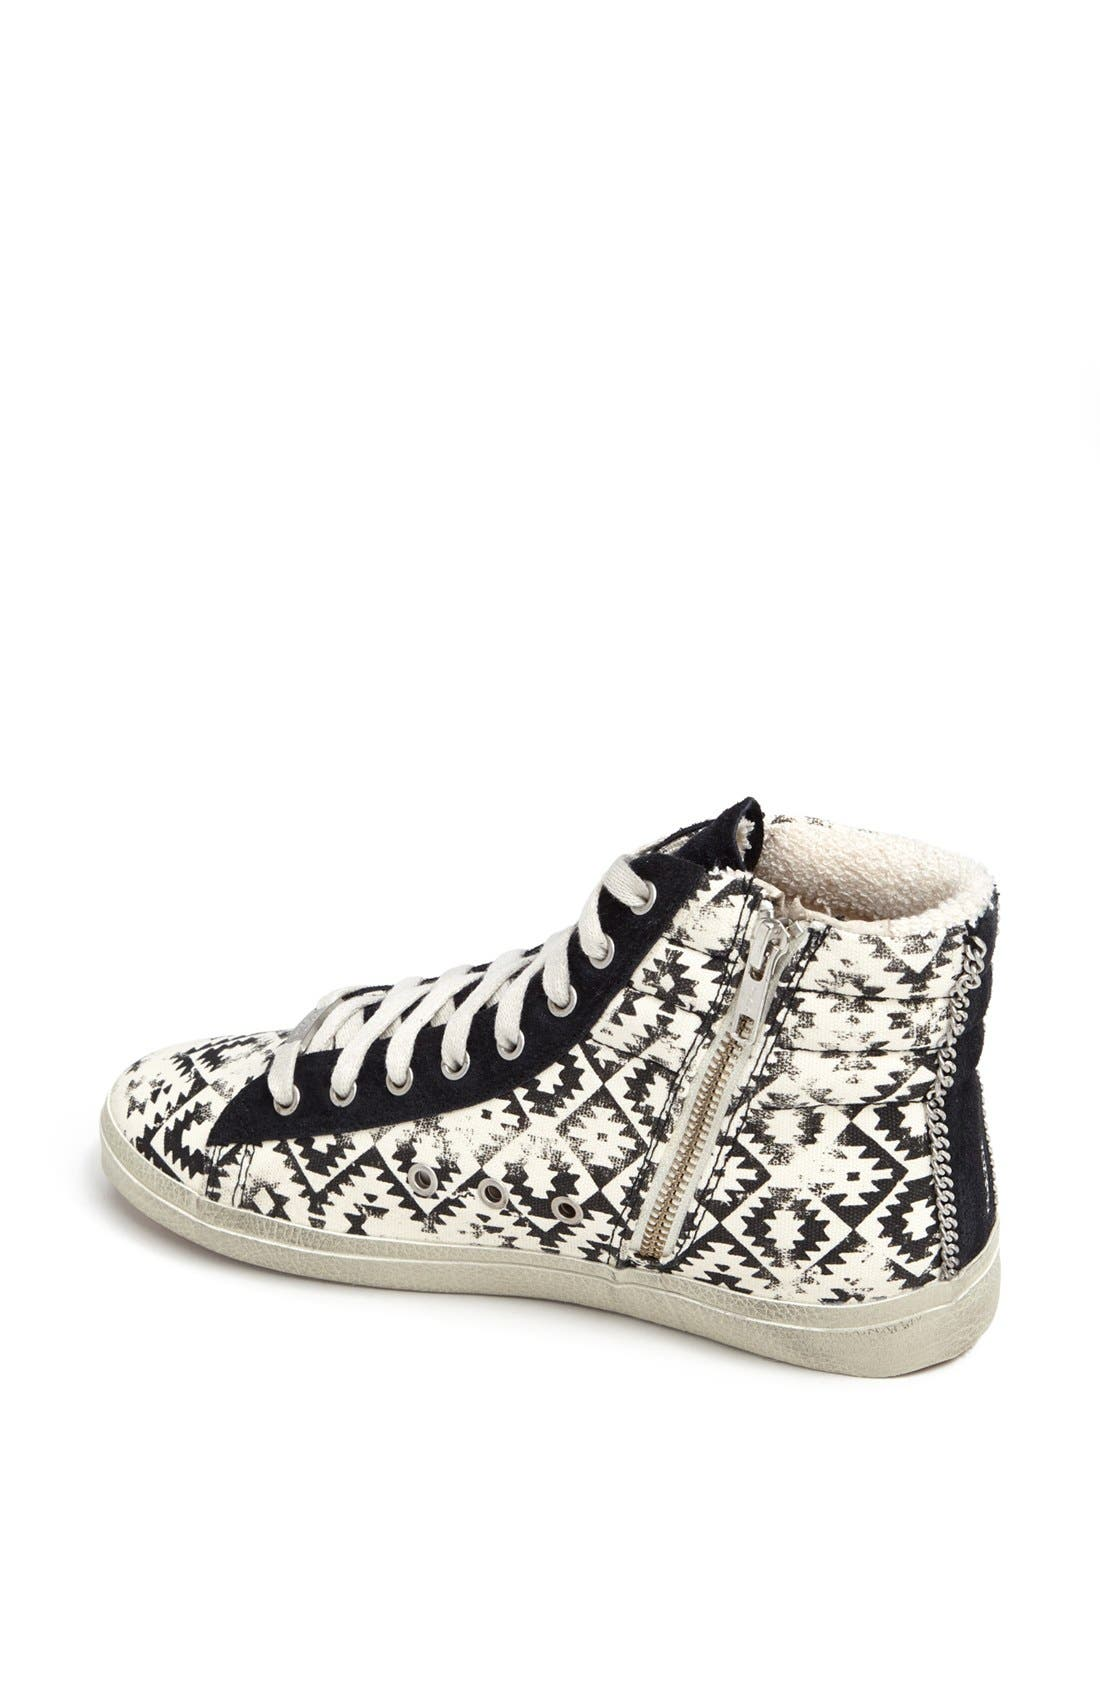 Alternate Image 2  - Kim & Zozi 'Gypster' High Top Sneaker